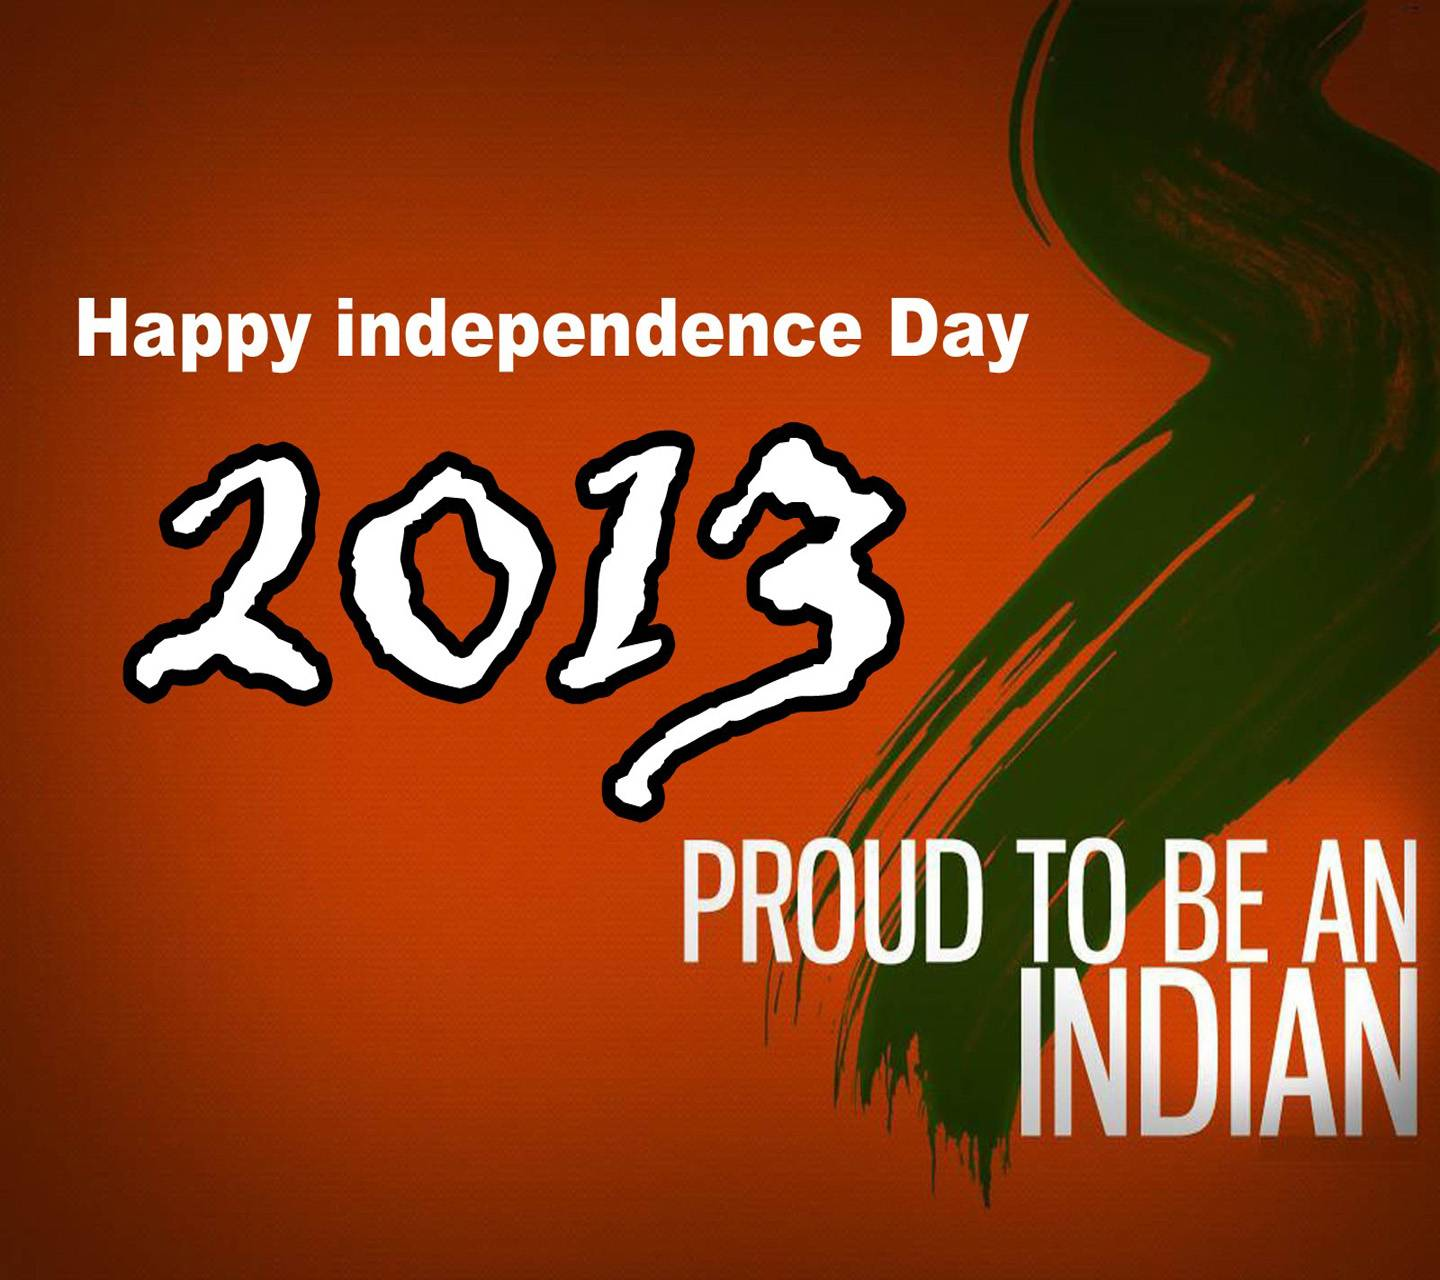 Independence Day Wallpaper By Happycool 66 Free On Zedge